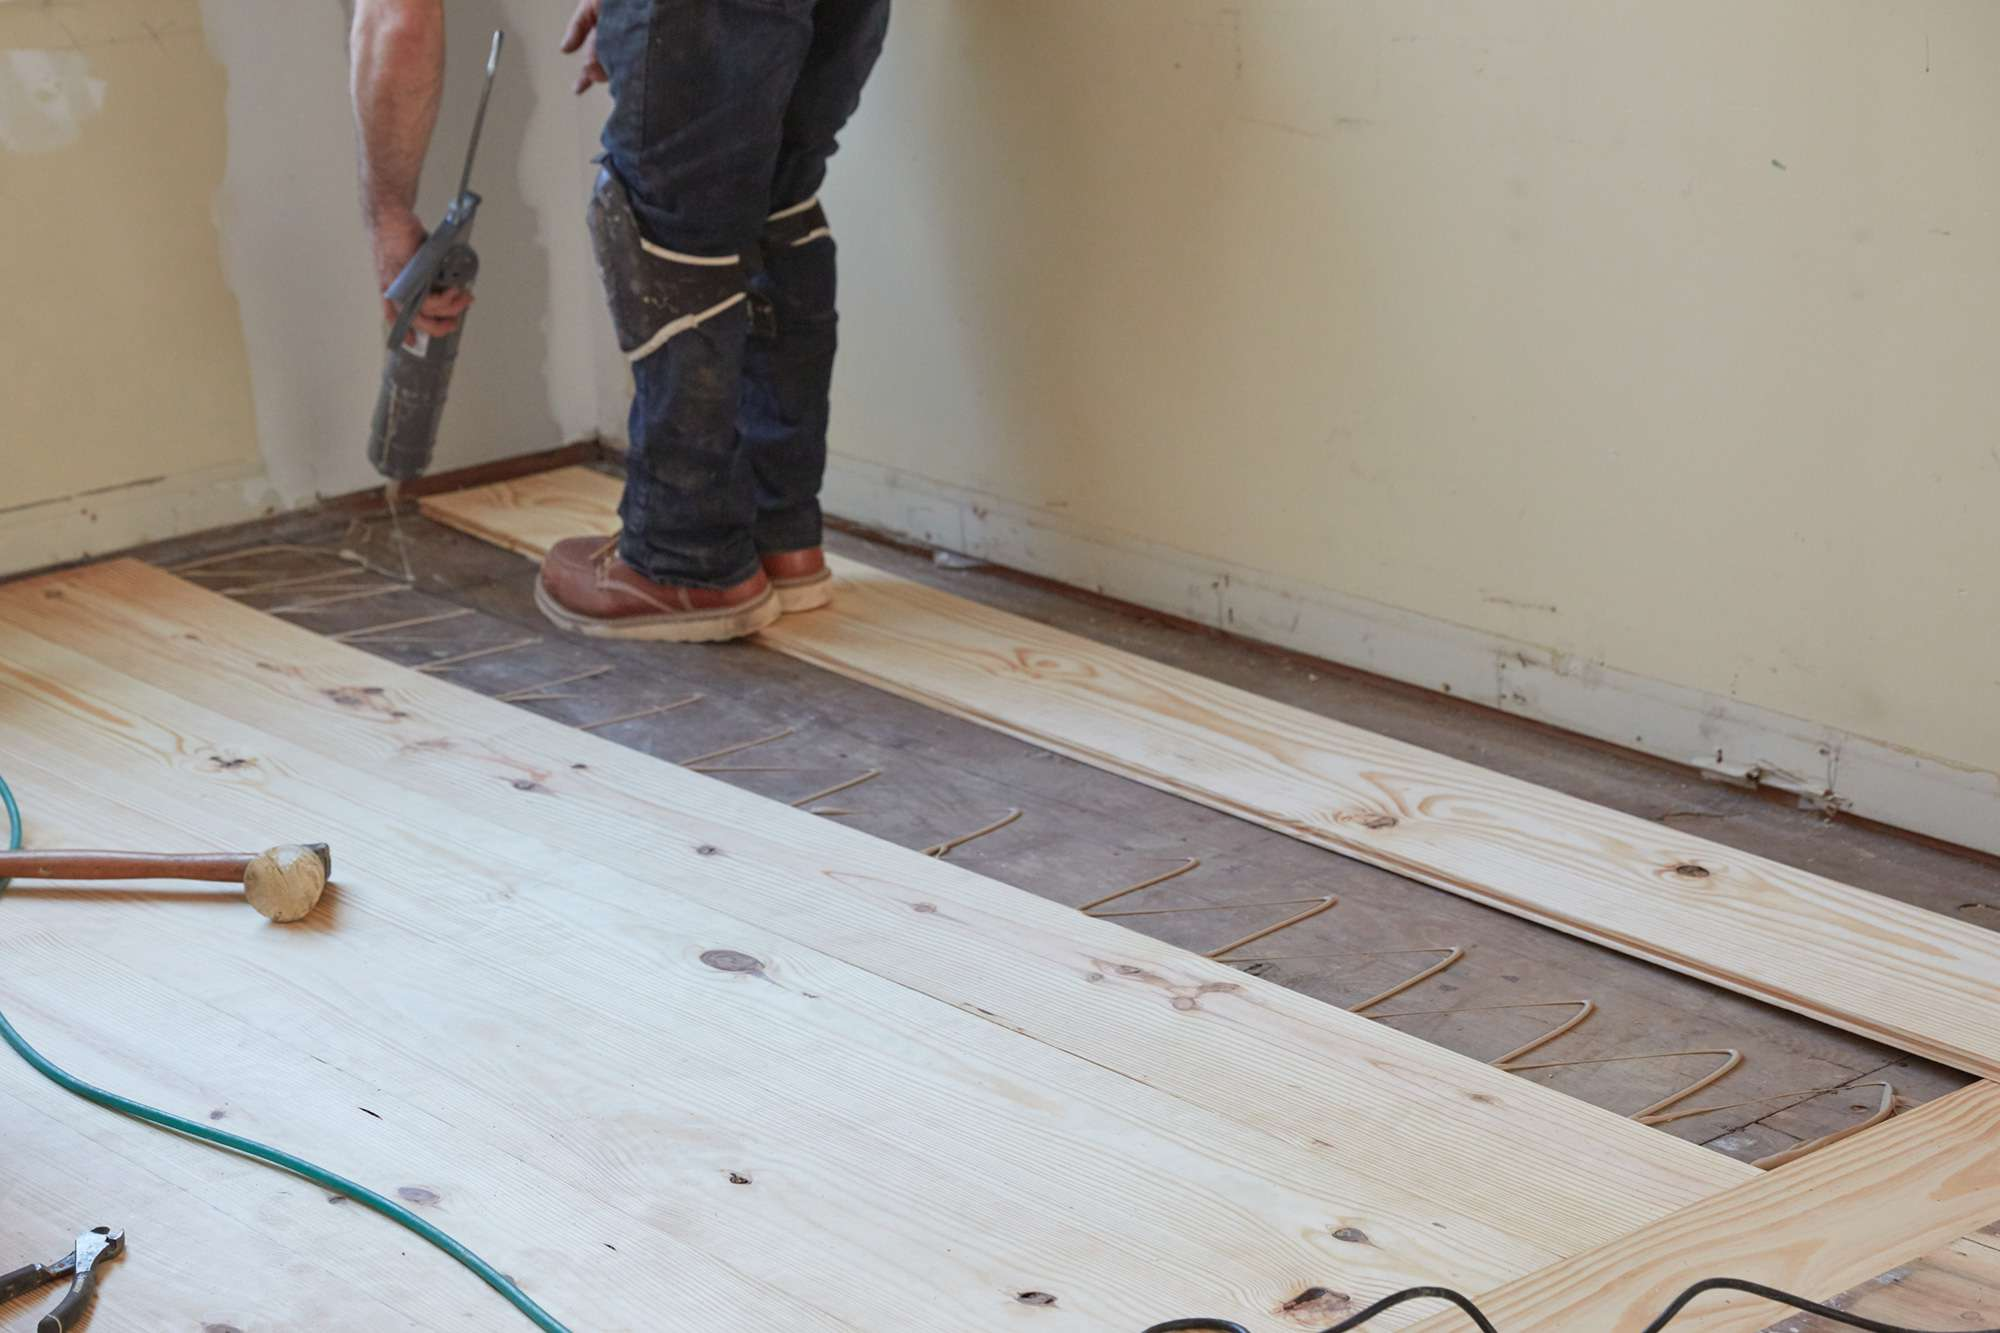 How To Choose The Right Flooring Adhesive, Adhesive Laminate Wood Flooring